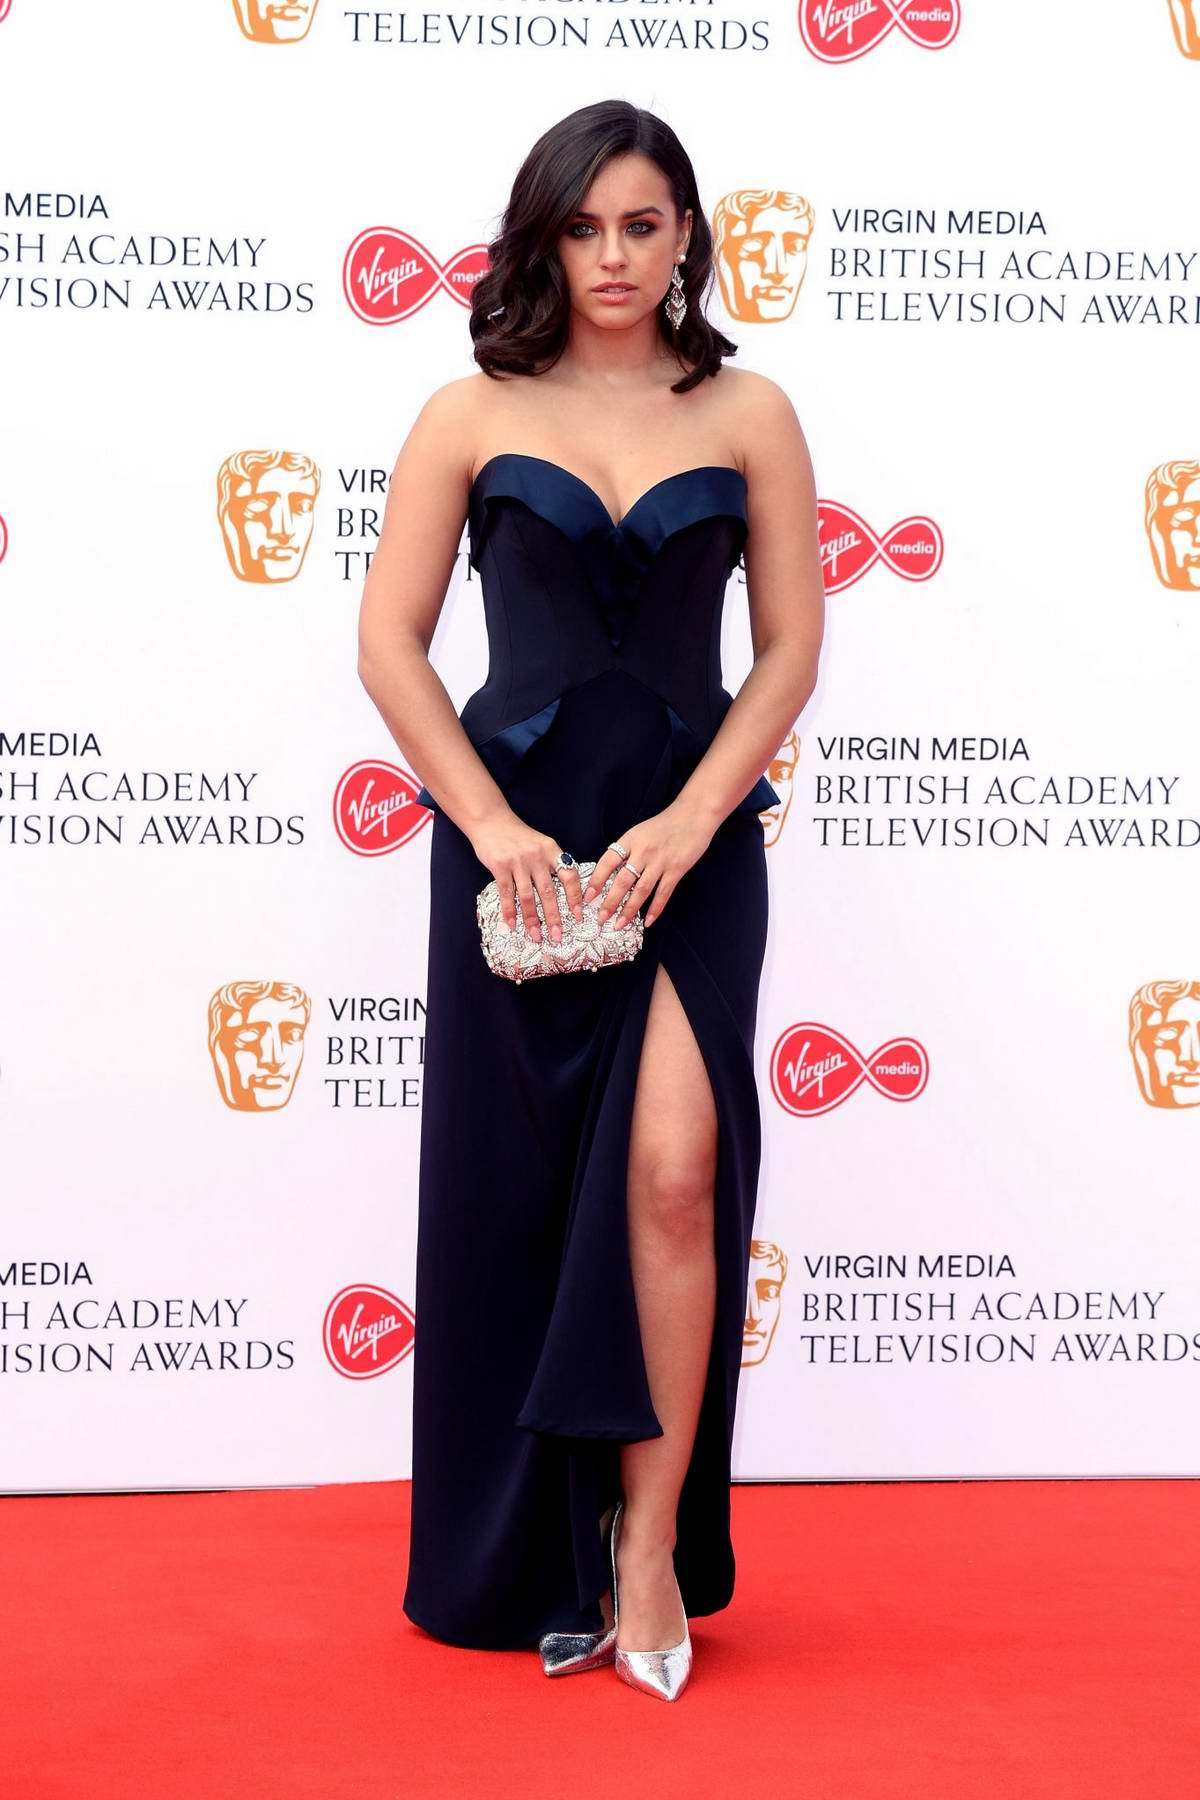 Georgia May Foote attends the 2019 British Academy Television Awards at Royal Festival Hall in London, UK